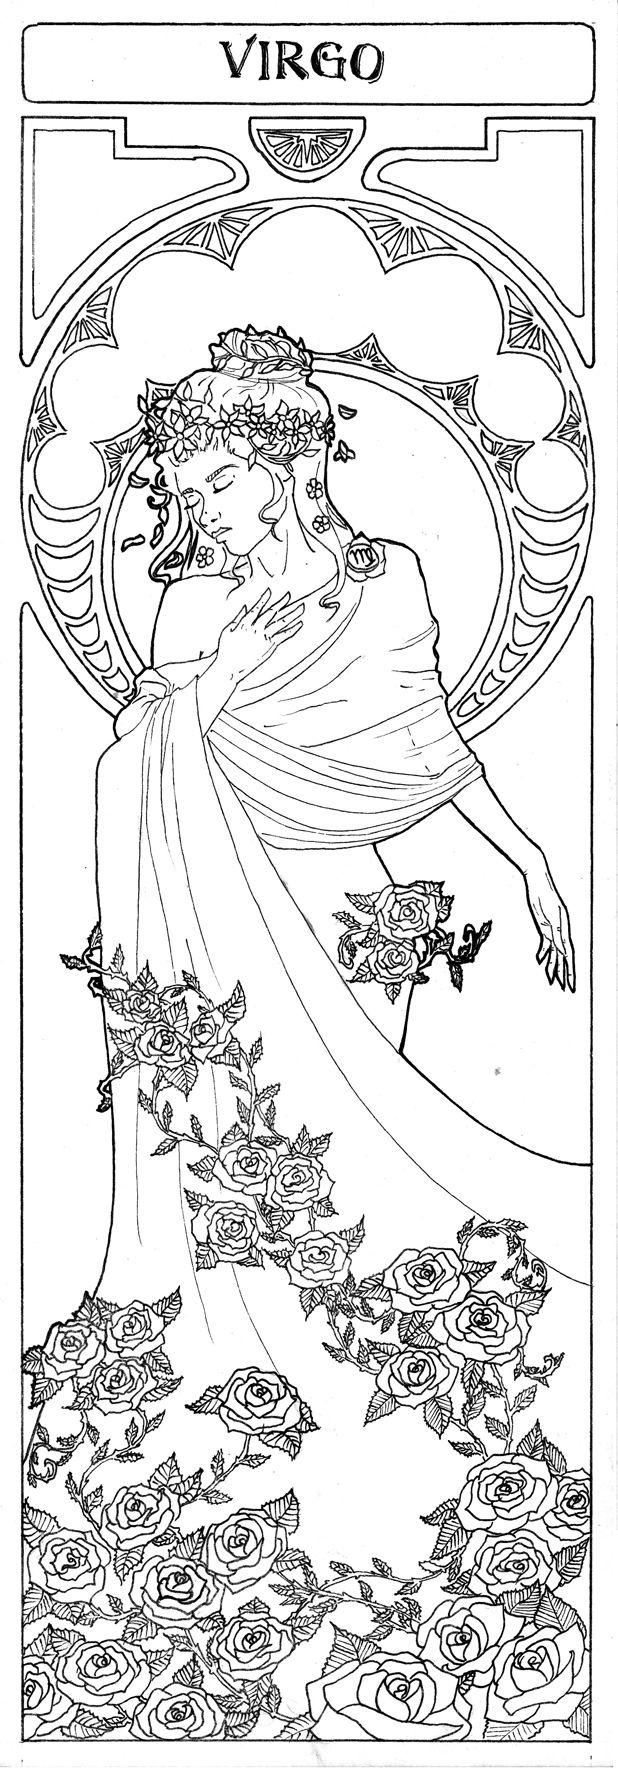 Coloring pages zodiac signs - Virgo The Virgin